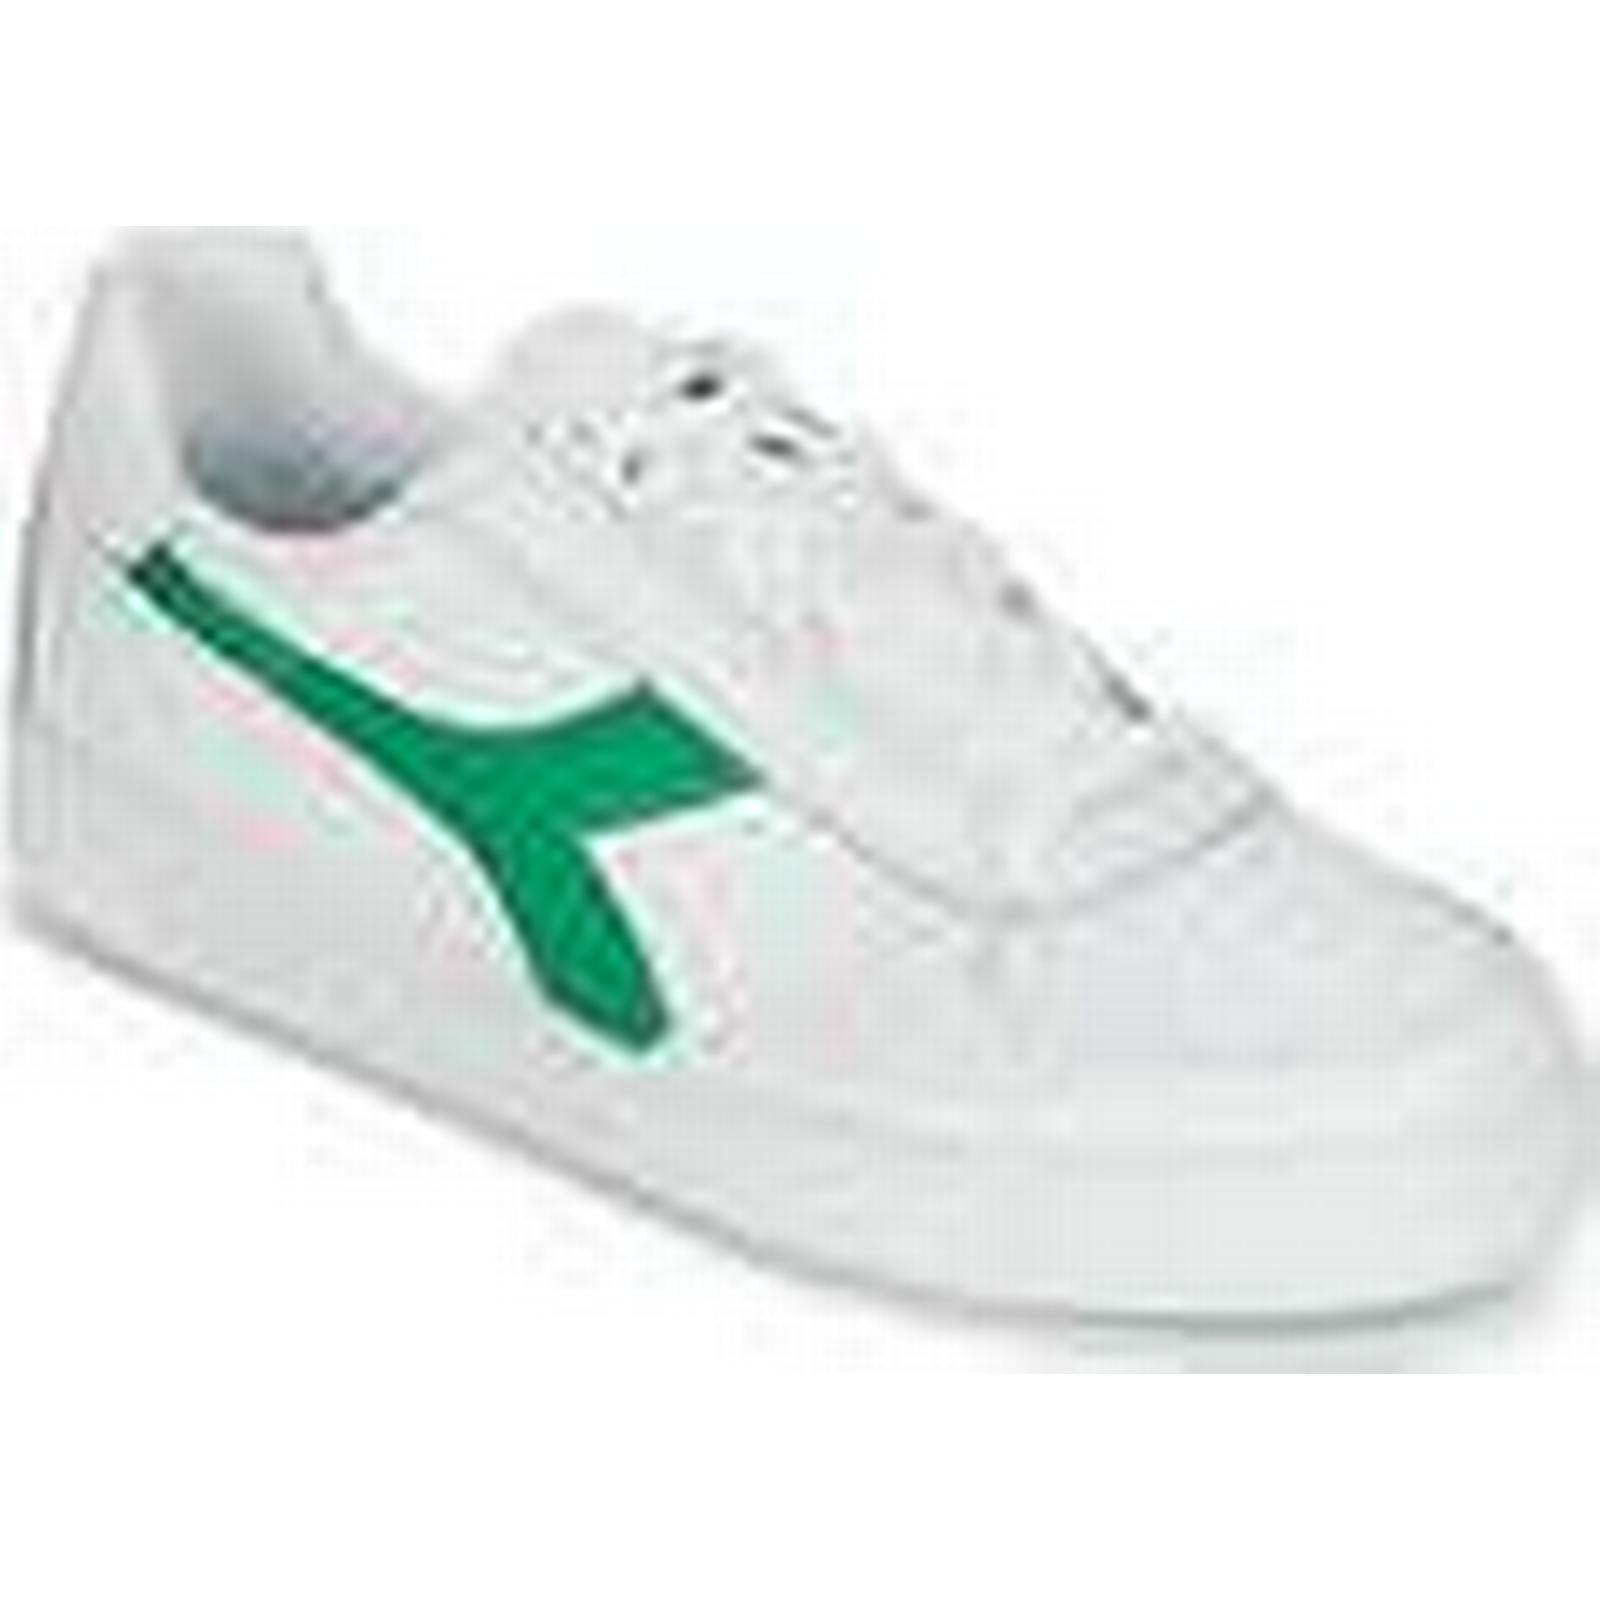 Diadora Shoes  B.ELITE  women's Shoes Diadora (Trainers) in White 204737